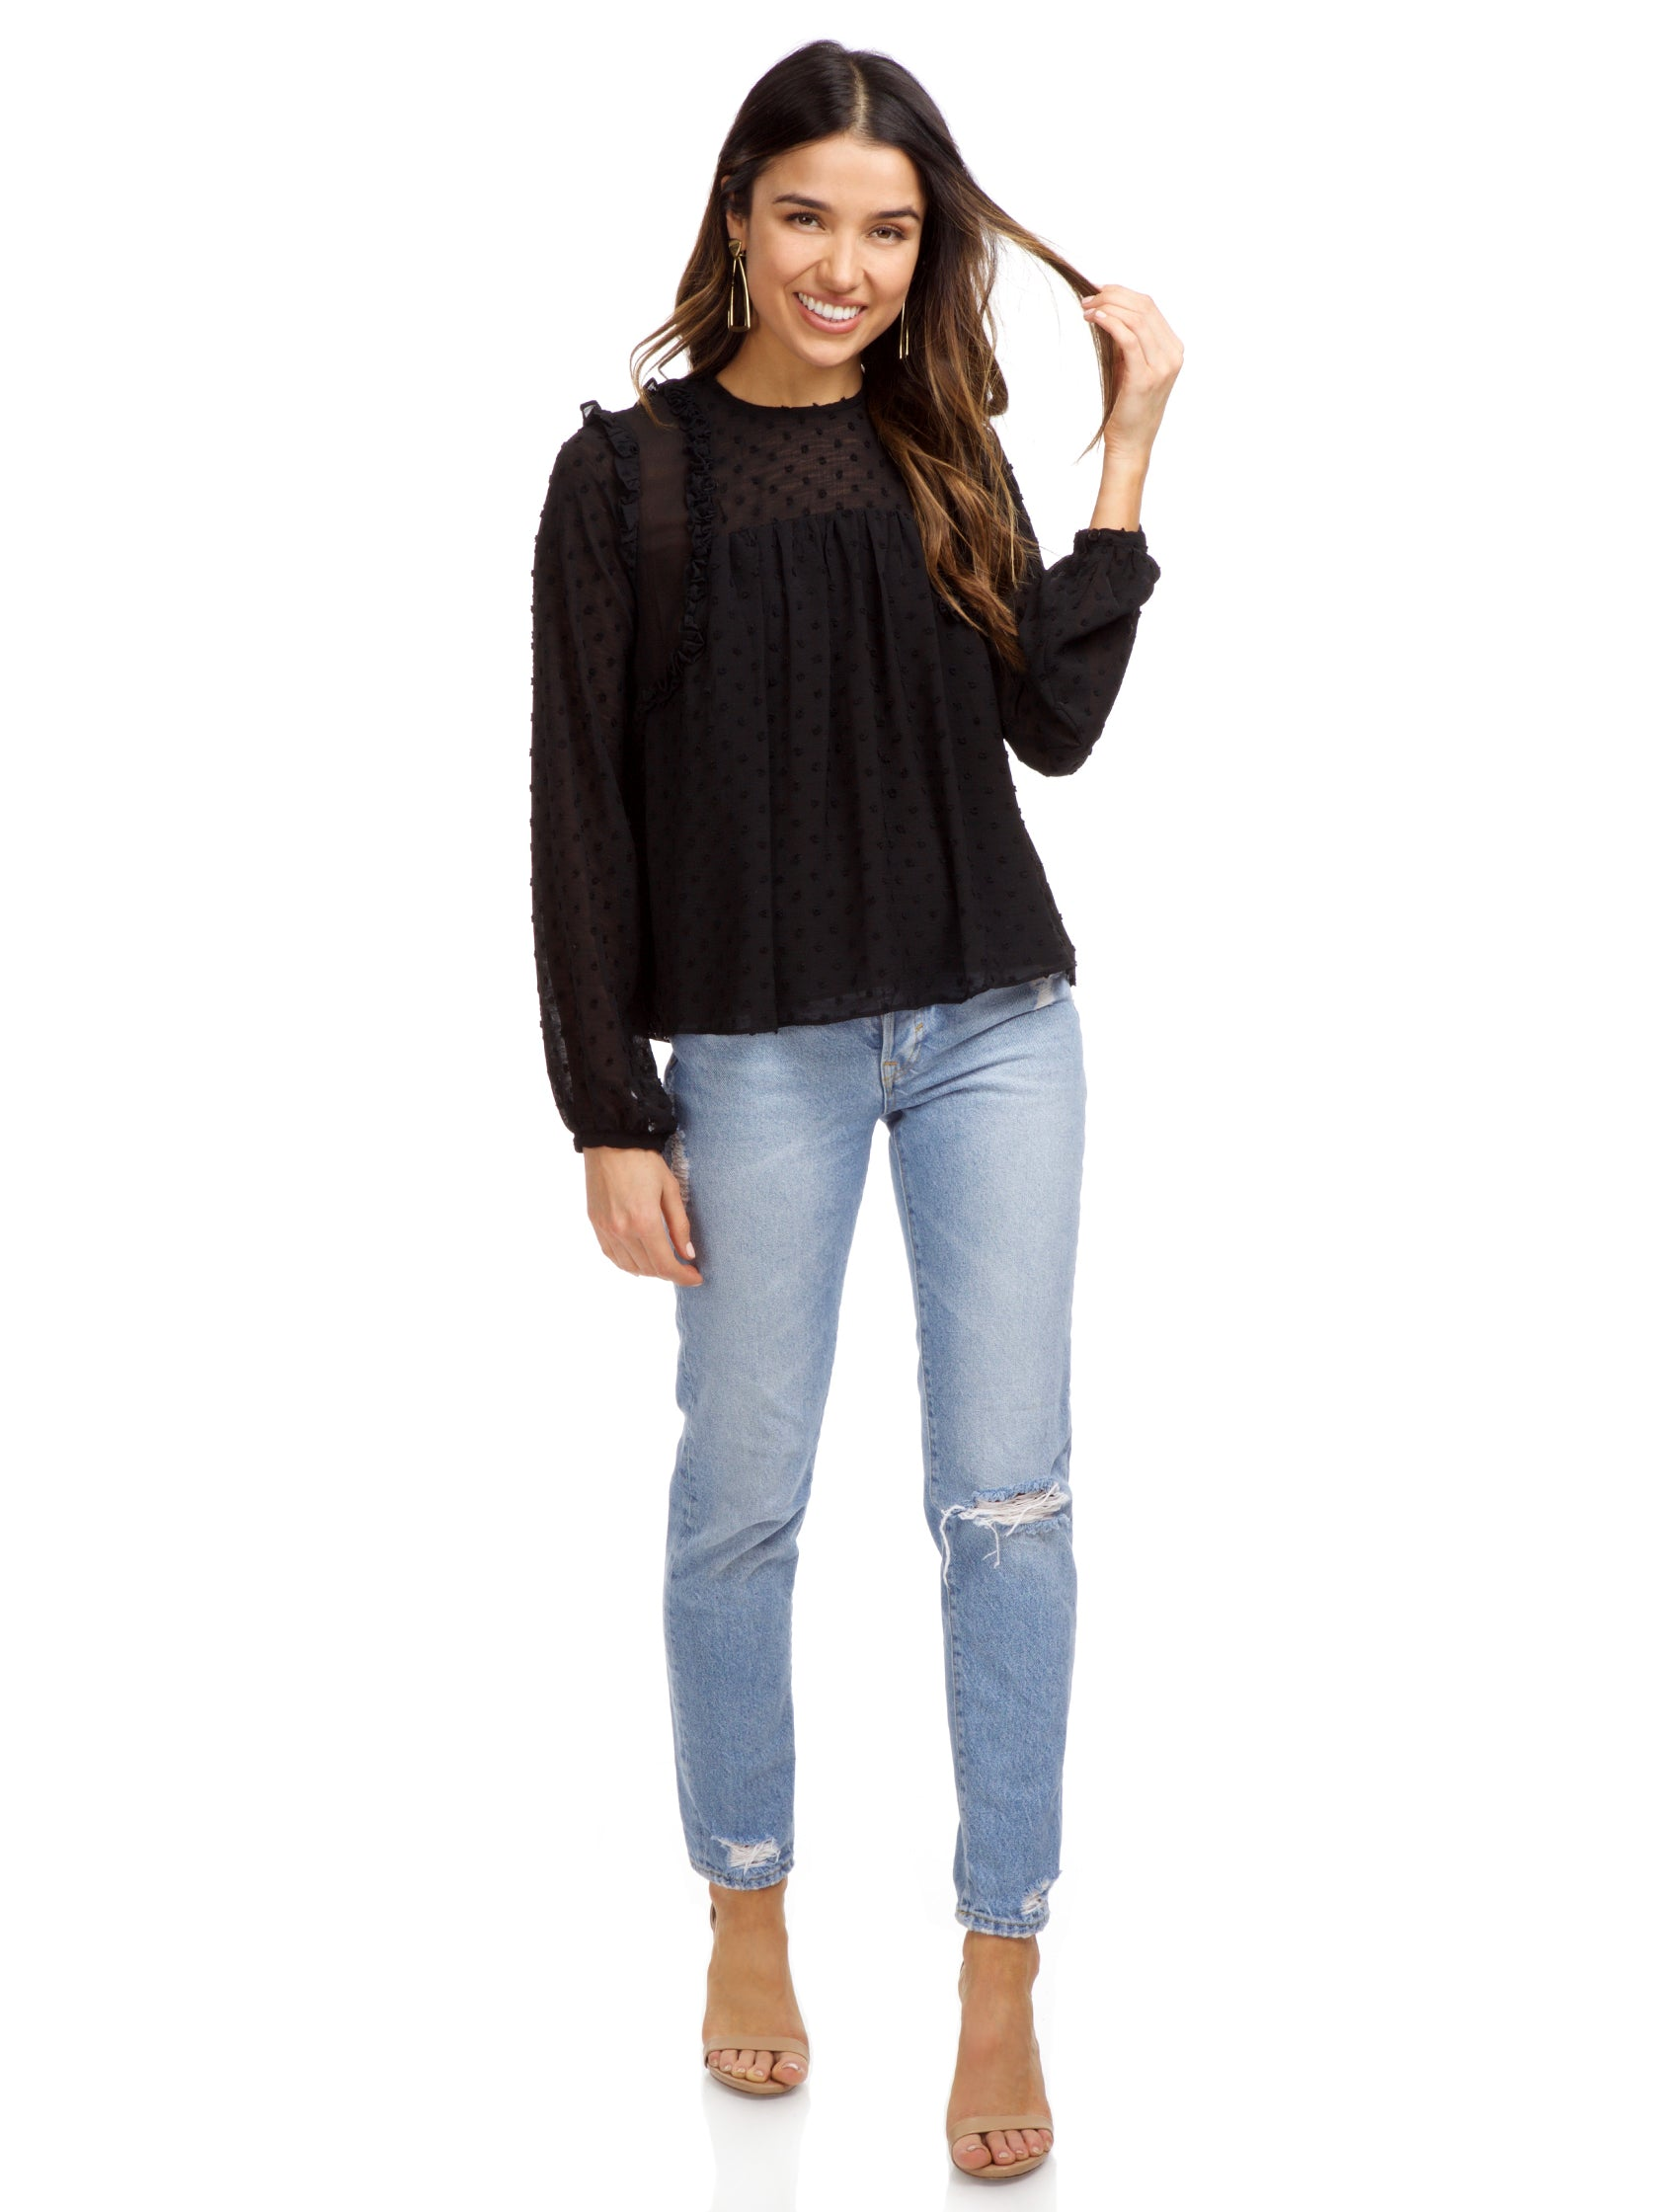 Girl wearing a top rental from Strut & Bolt called Dotted Ruffle Long Sleeve Top